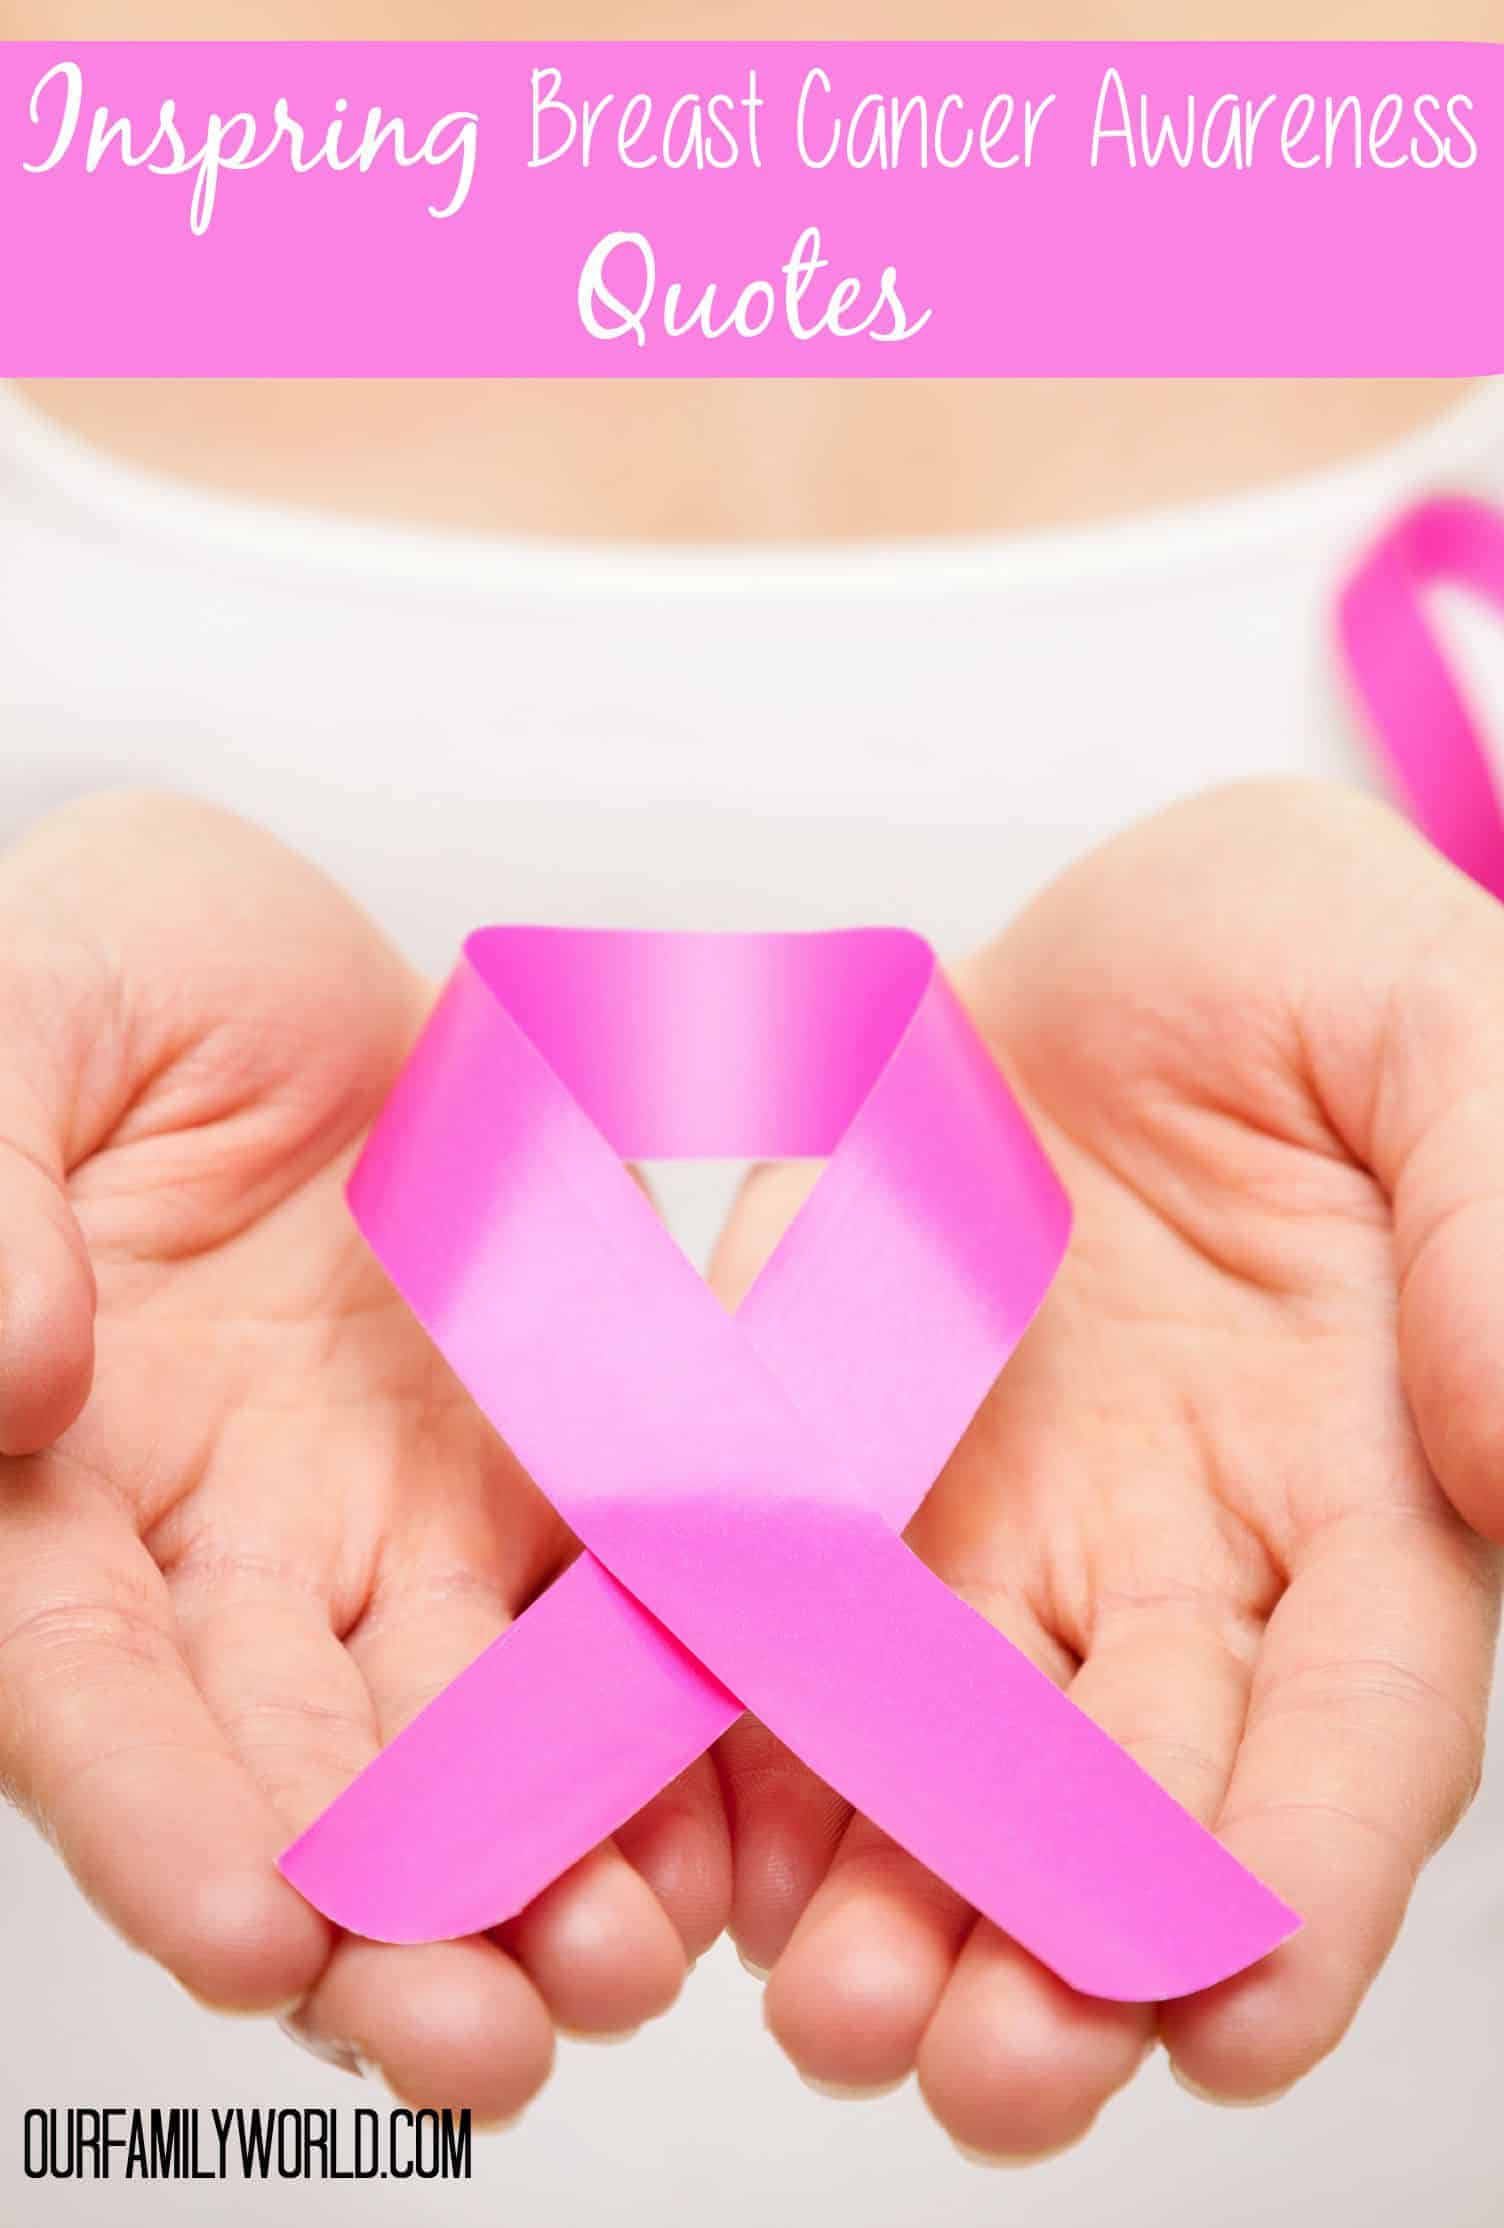 9 Inspiring Breast Cancer Awareness Quotes